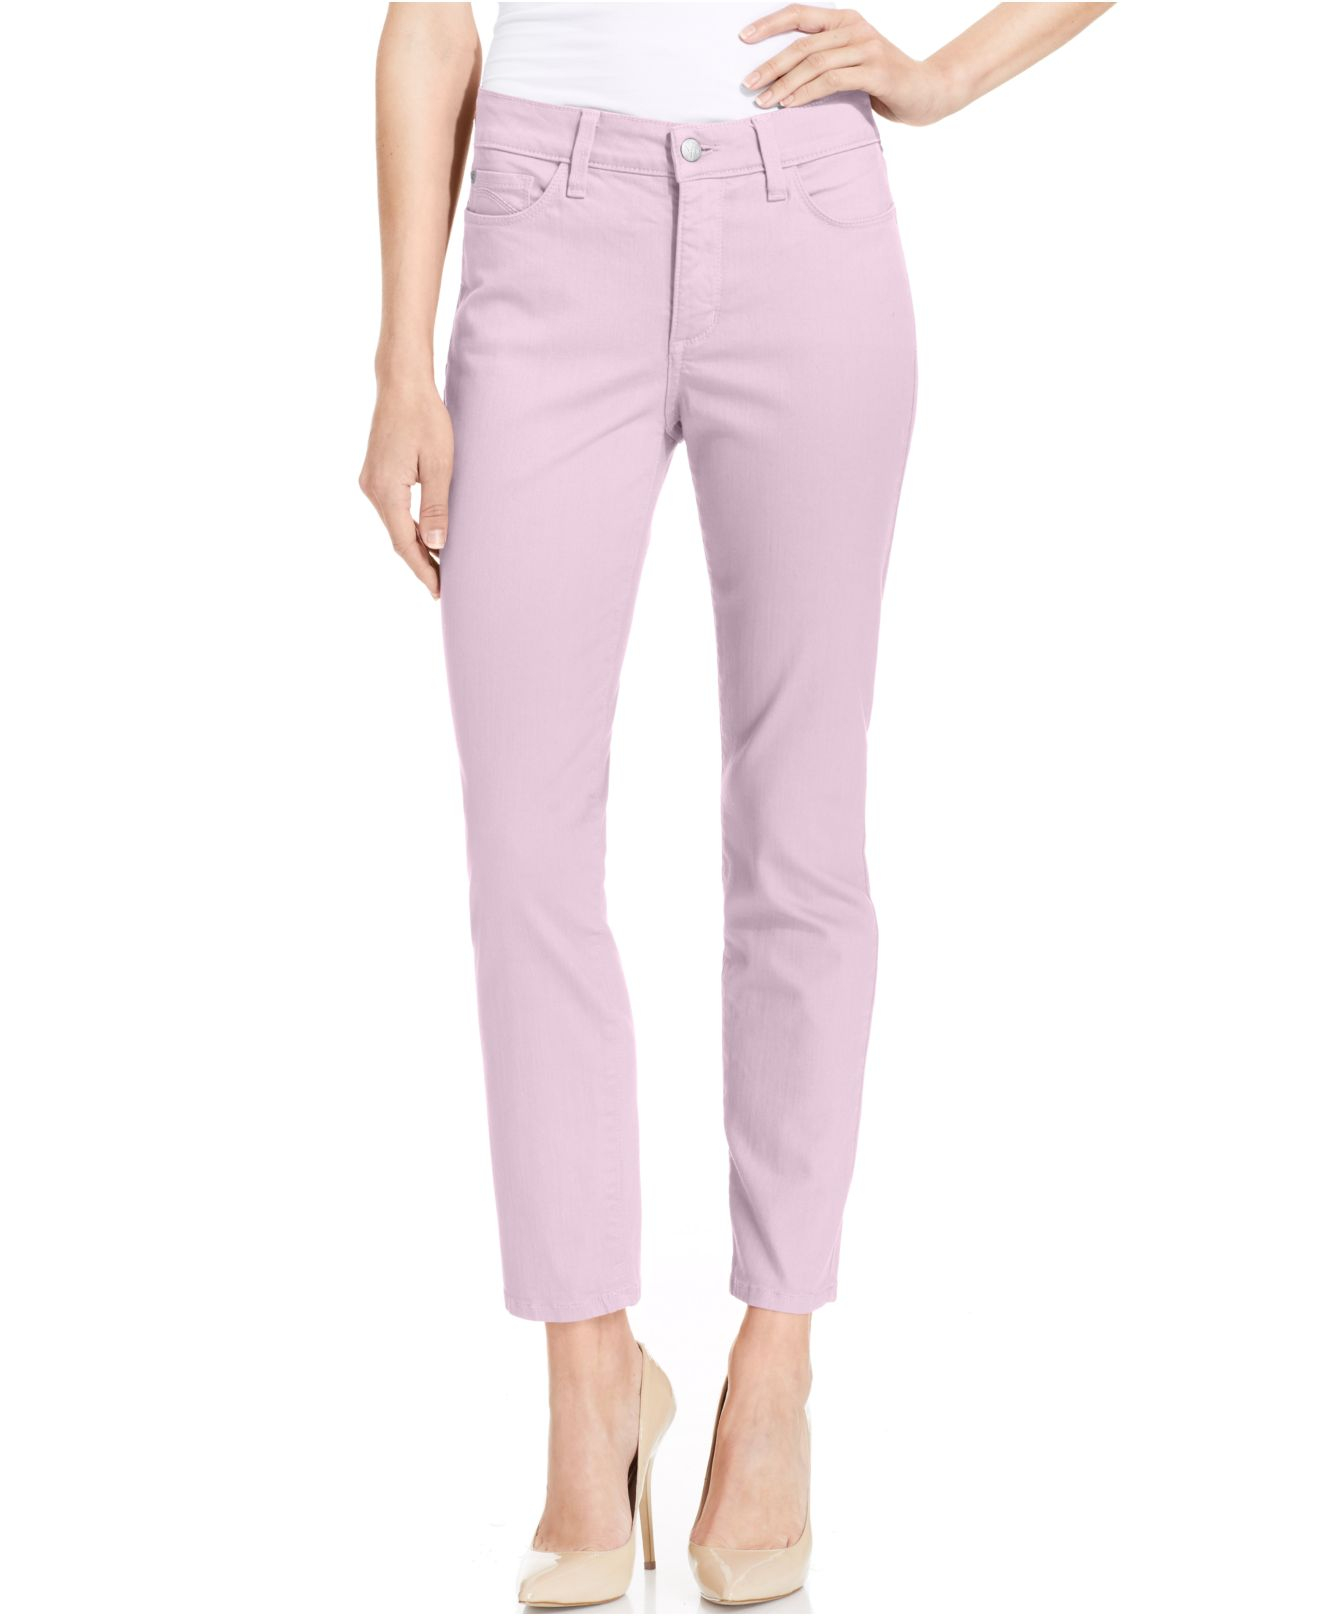 Find great deals on eBay for womens petite colored jeans. Shop with confidence.